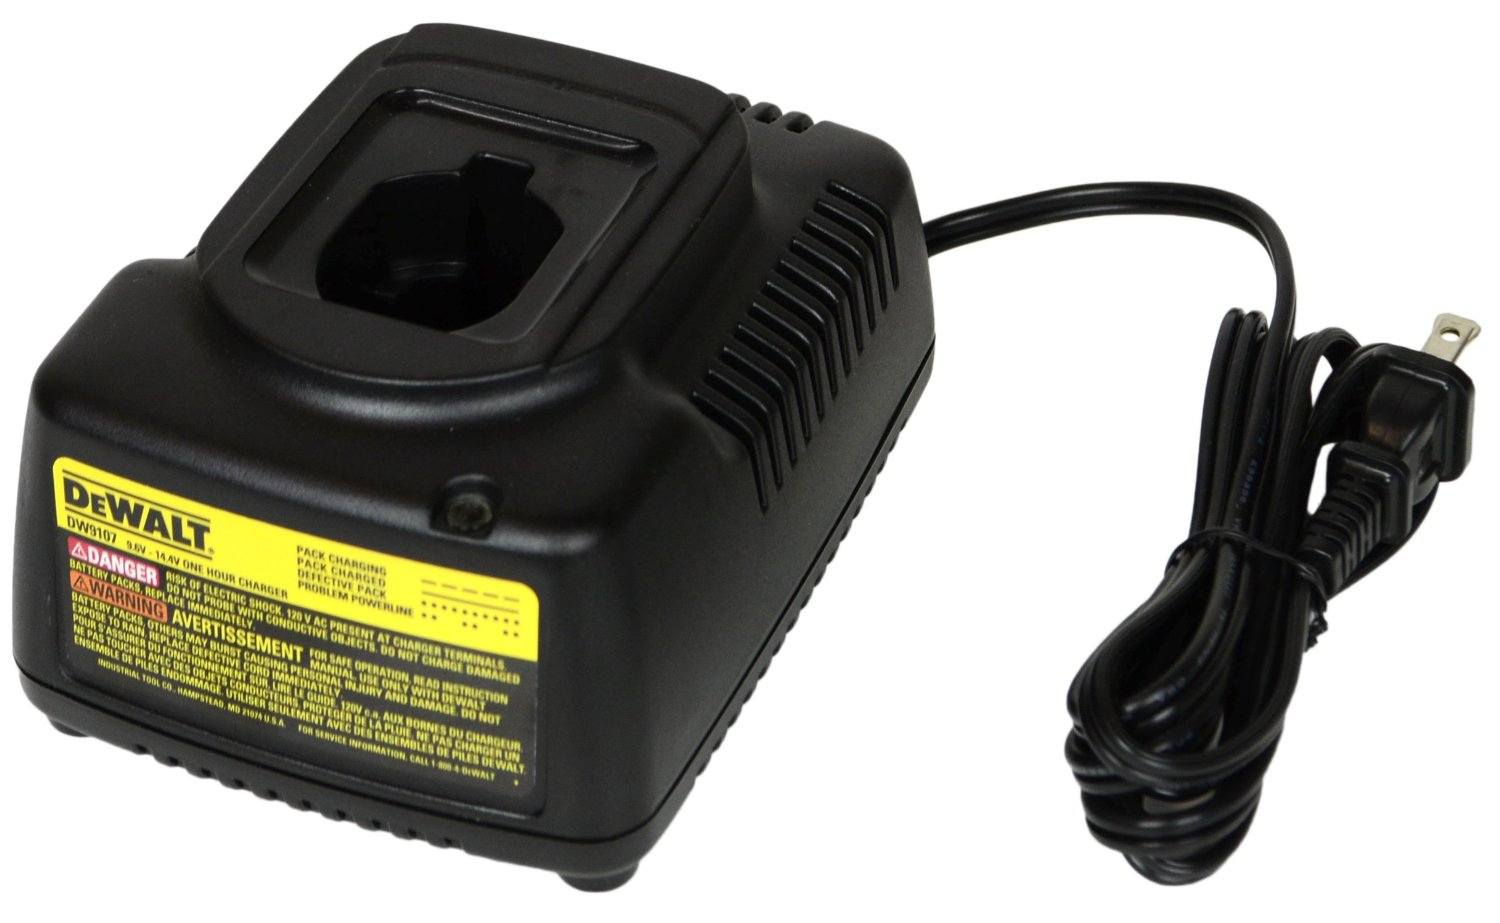 DEWALT DW9107 ONE HOUR BATTERY CHARGER 7.2V-14.4V USED 2.8AMPS